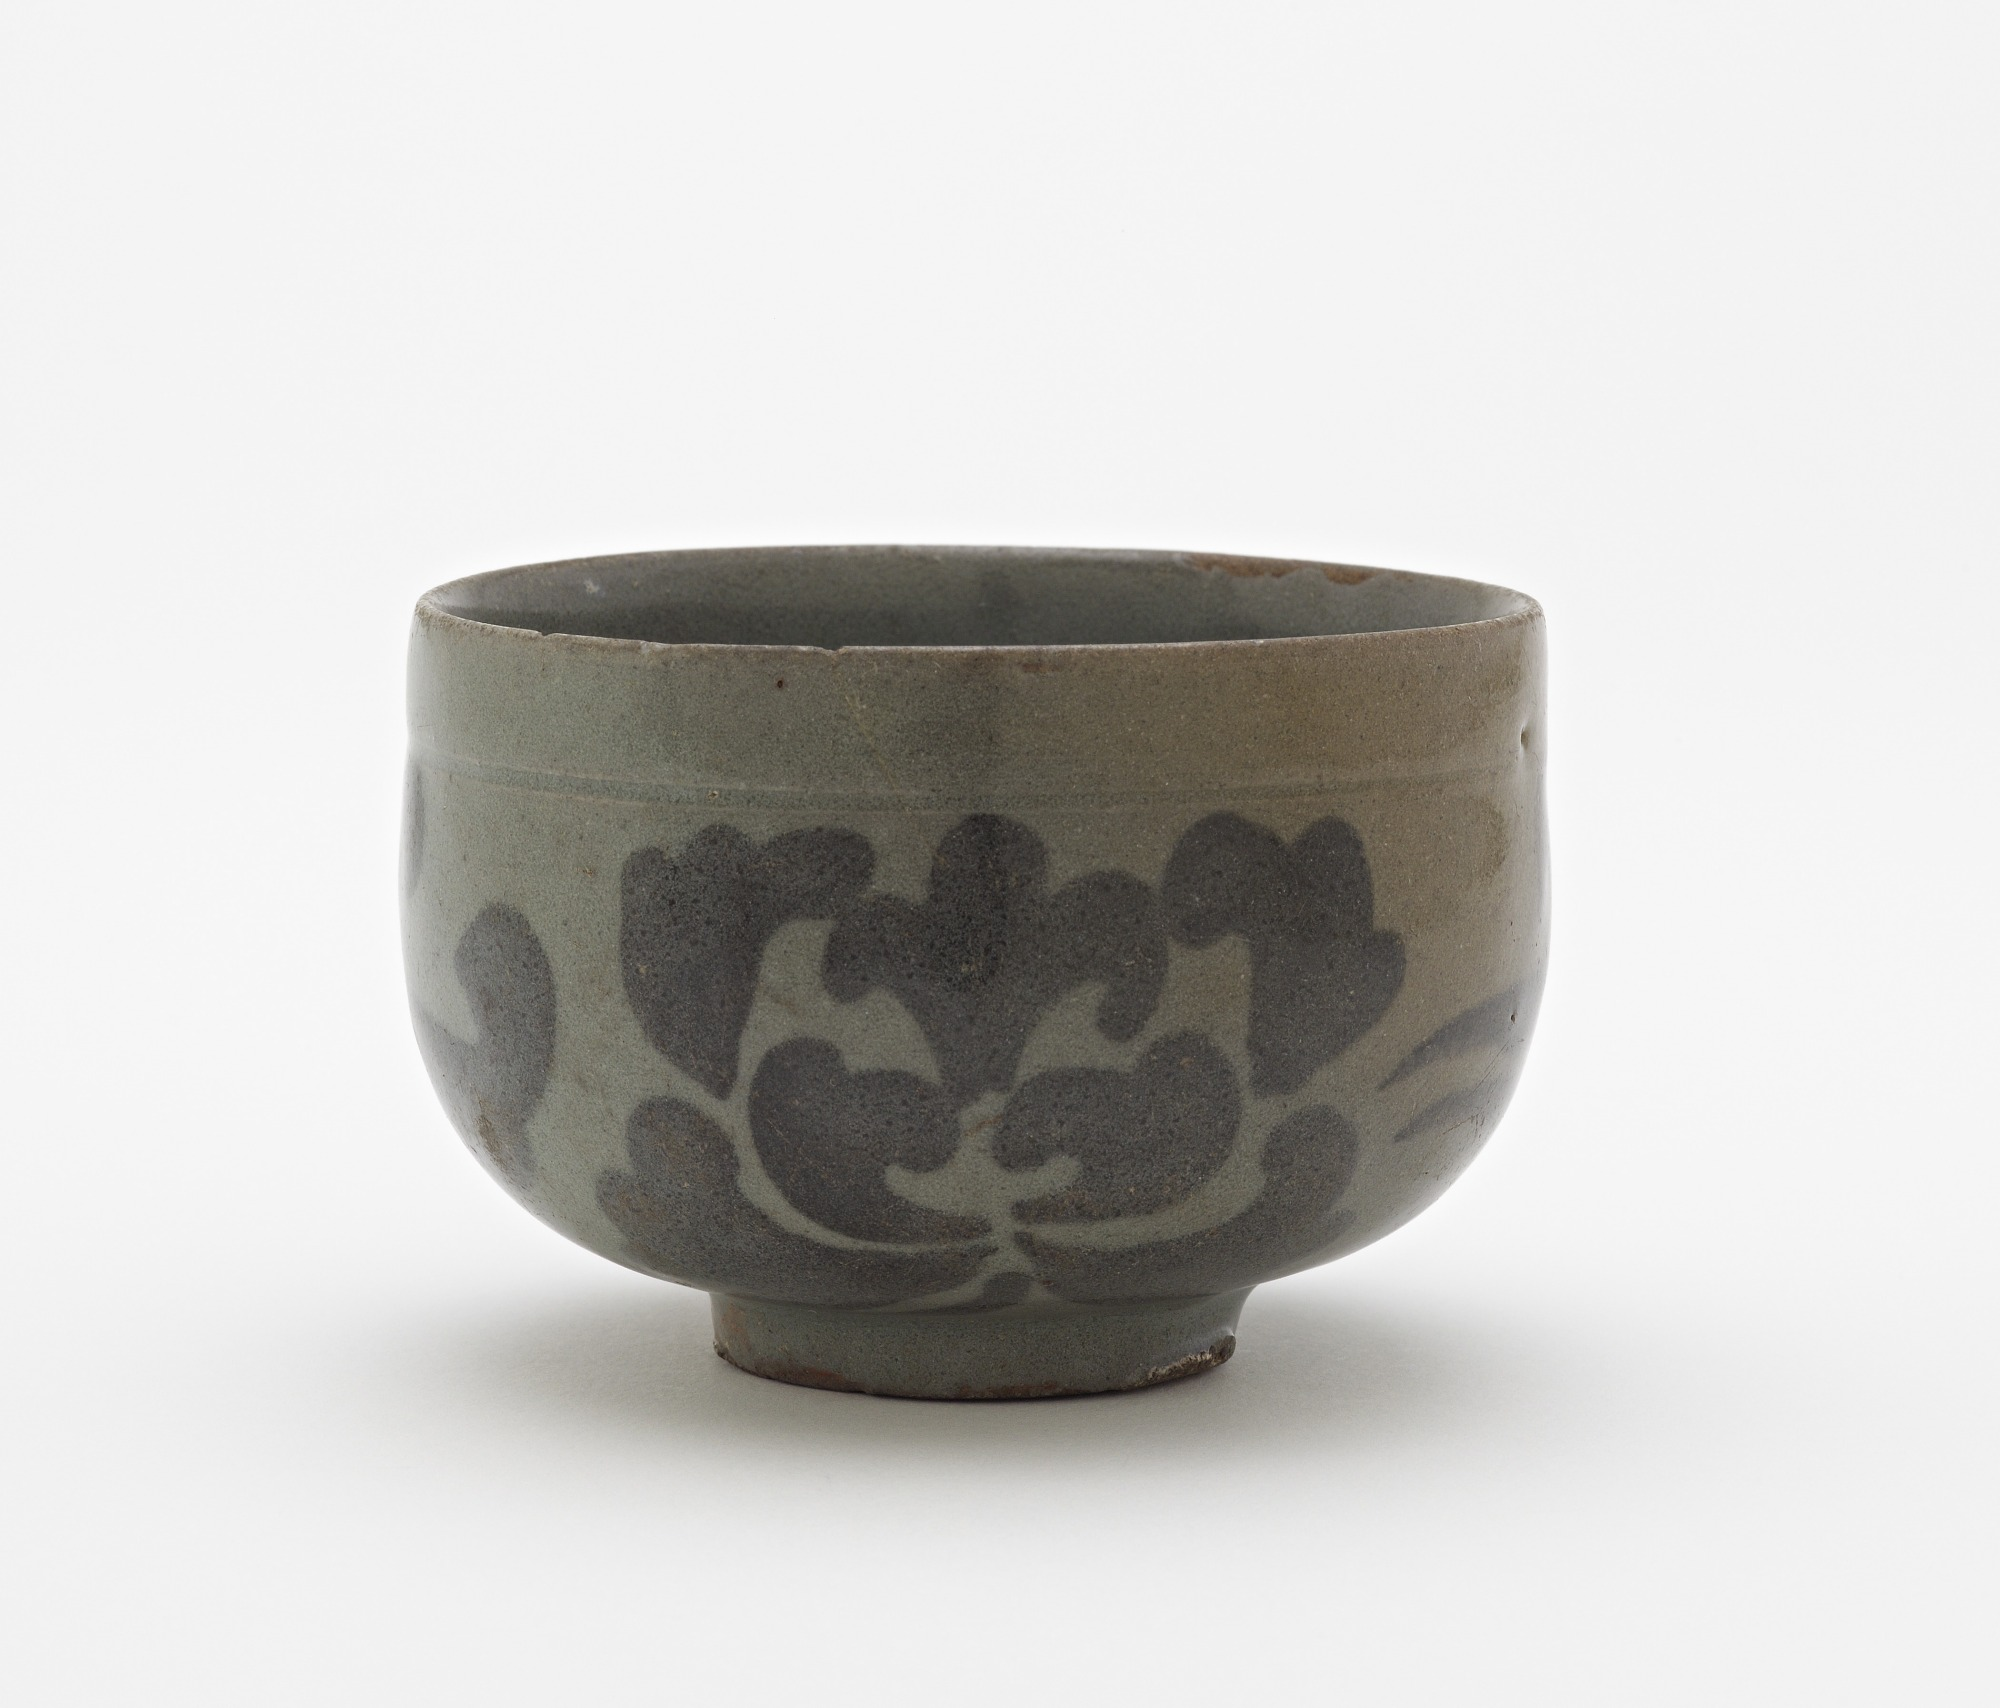 Cup with design of peony blossoms, profile